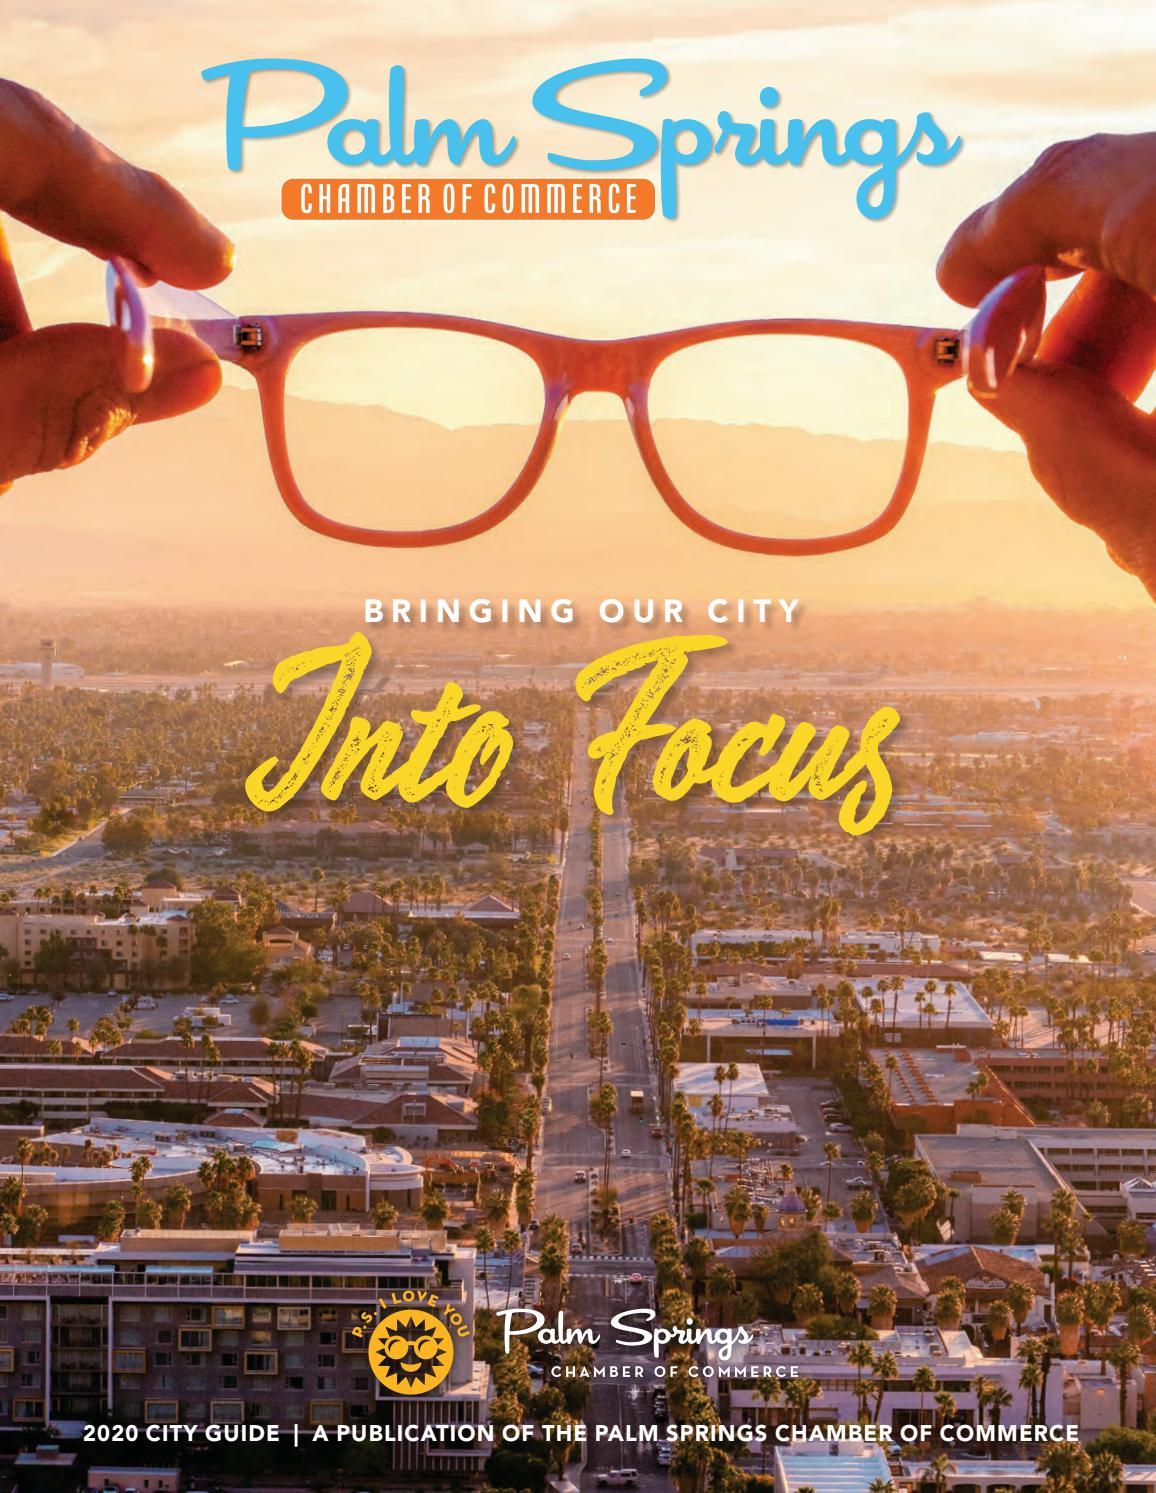 Palm Springs Chamber Of Commerce City Guide 2020 By Ps Chamber City Guide Issuu